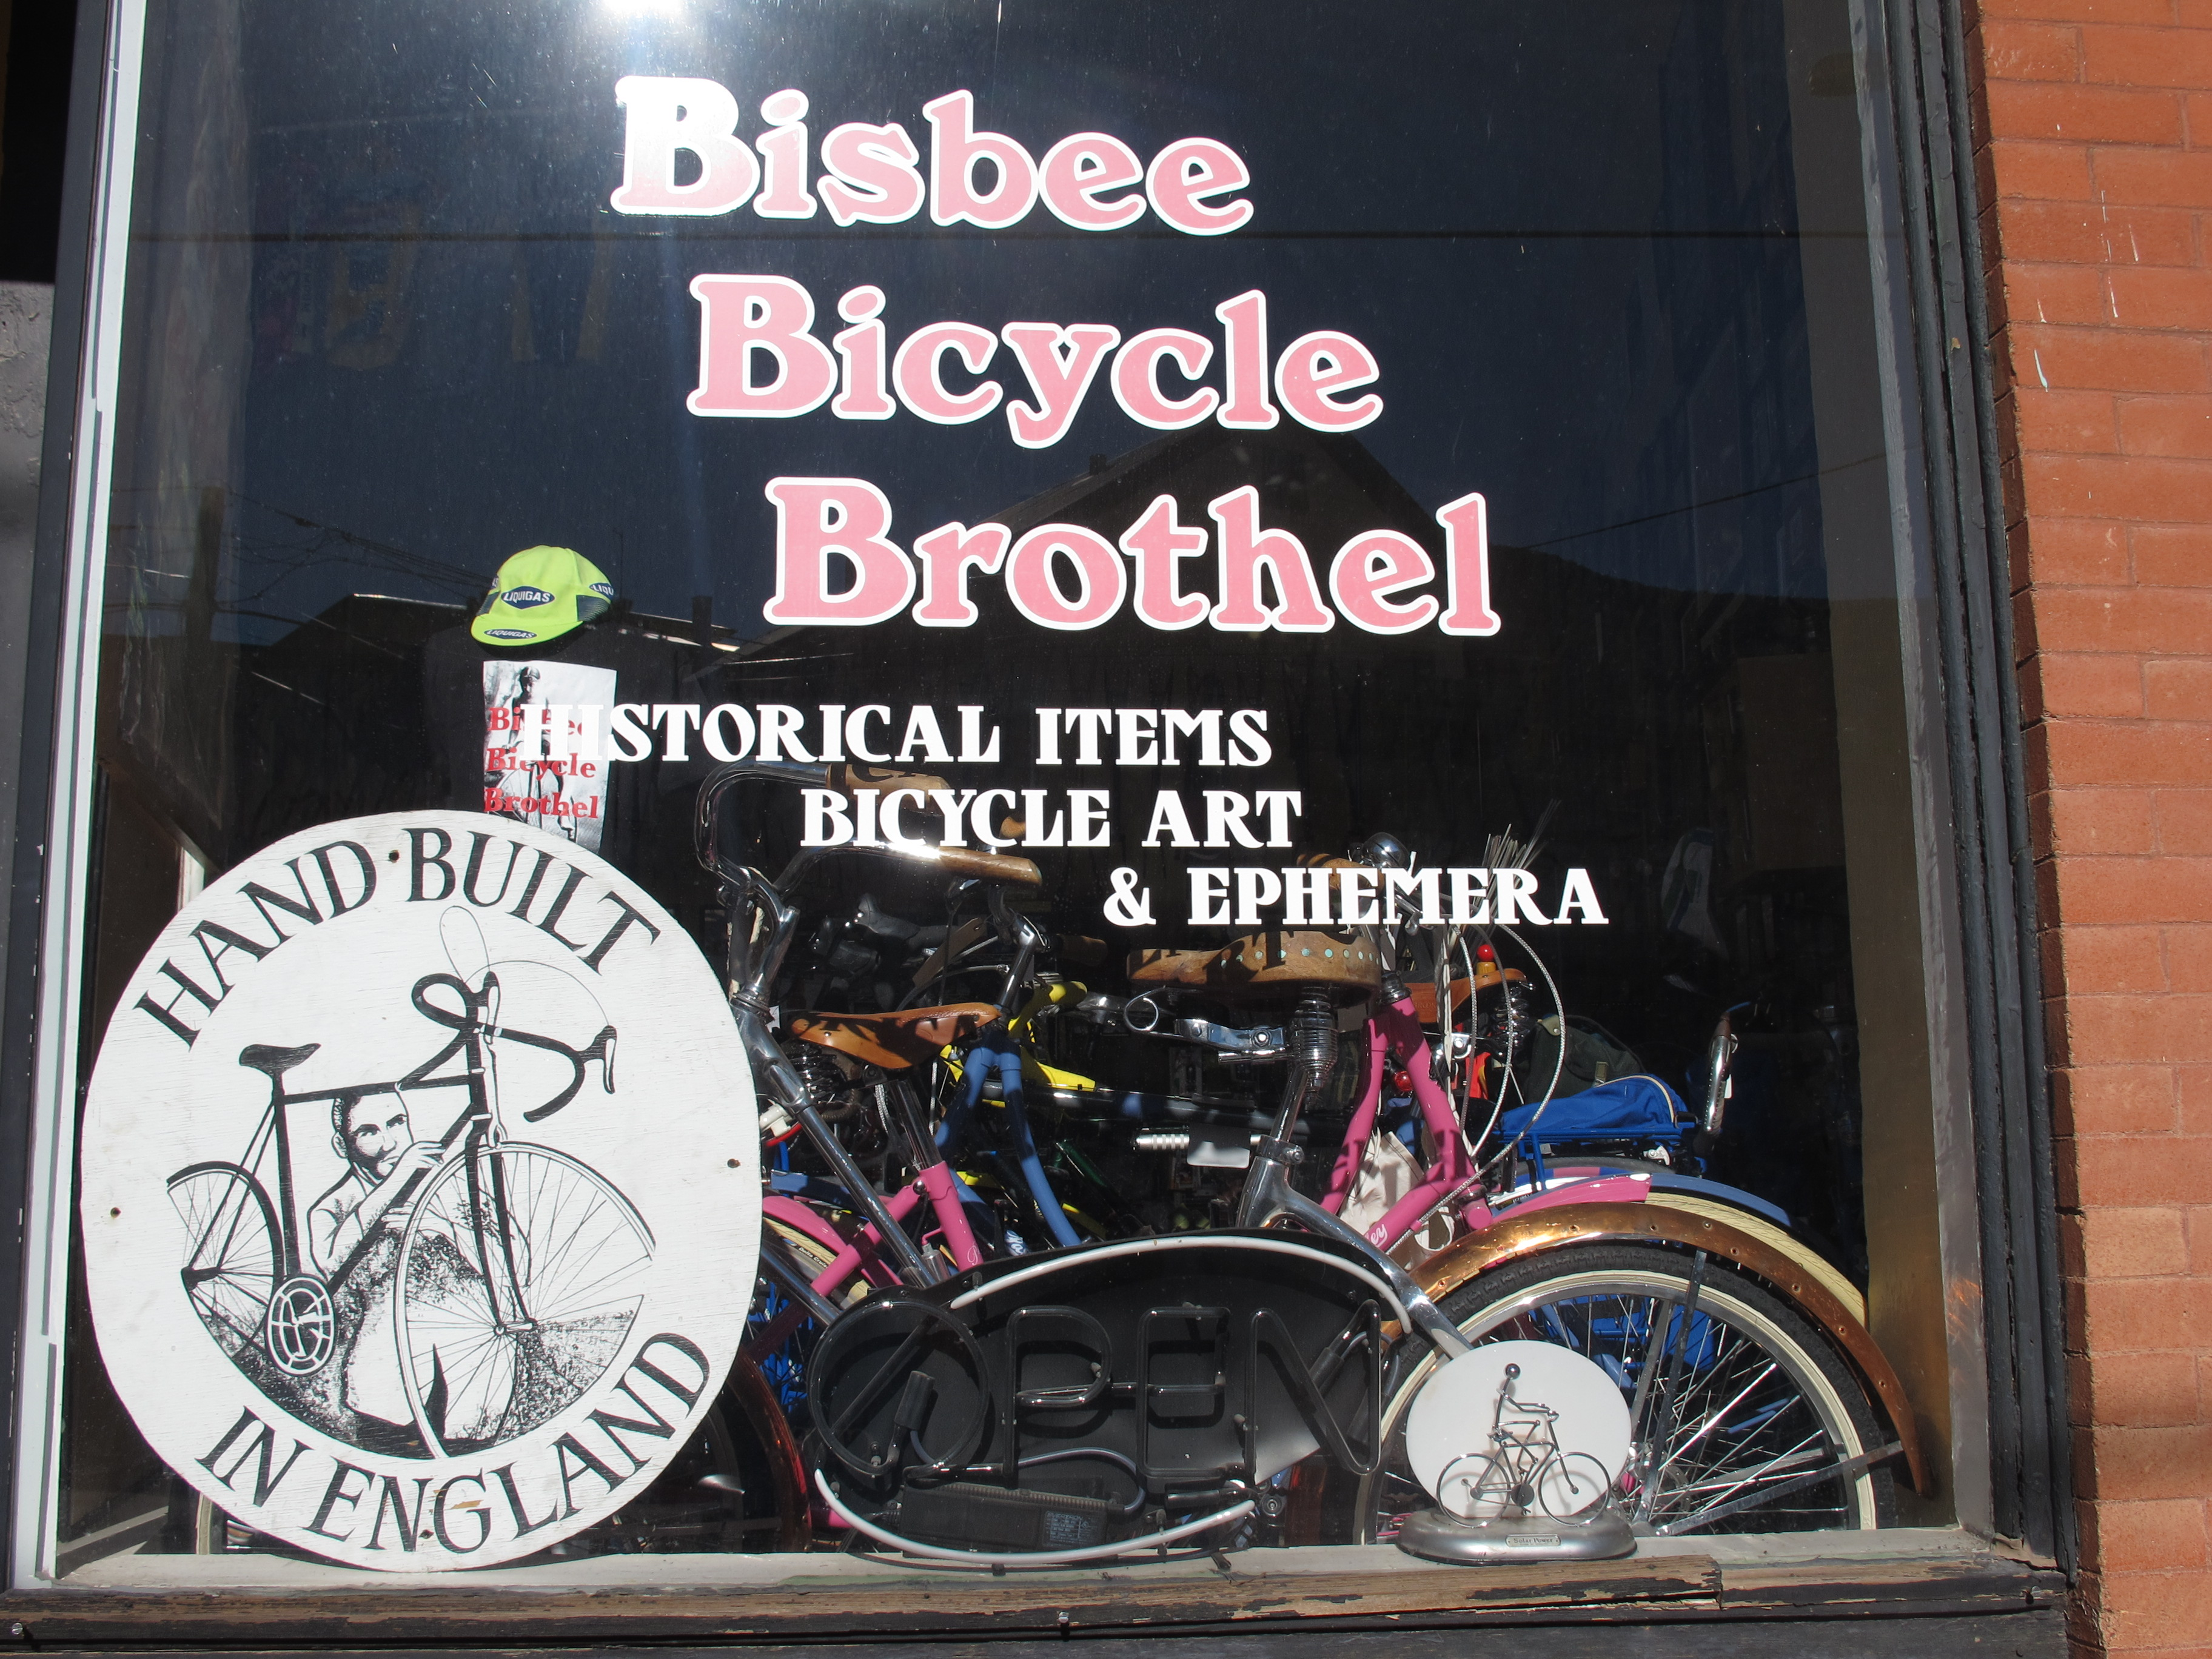 Arizona Bike Tour, Bisbee bike culture